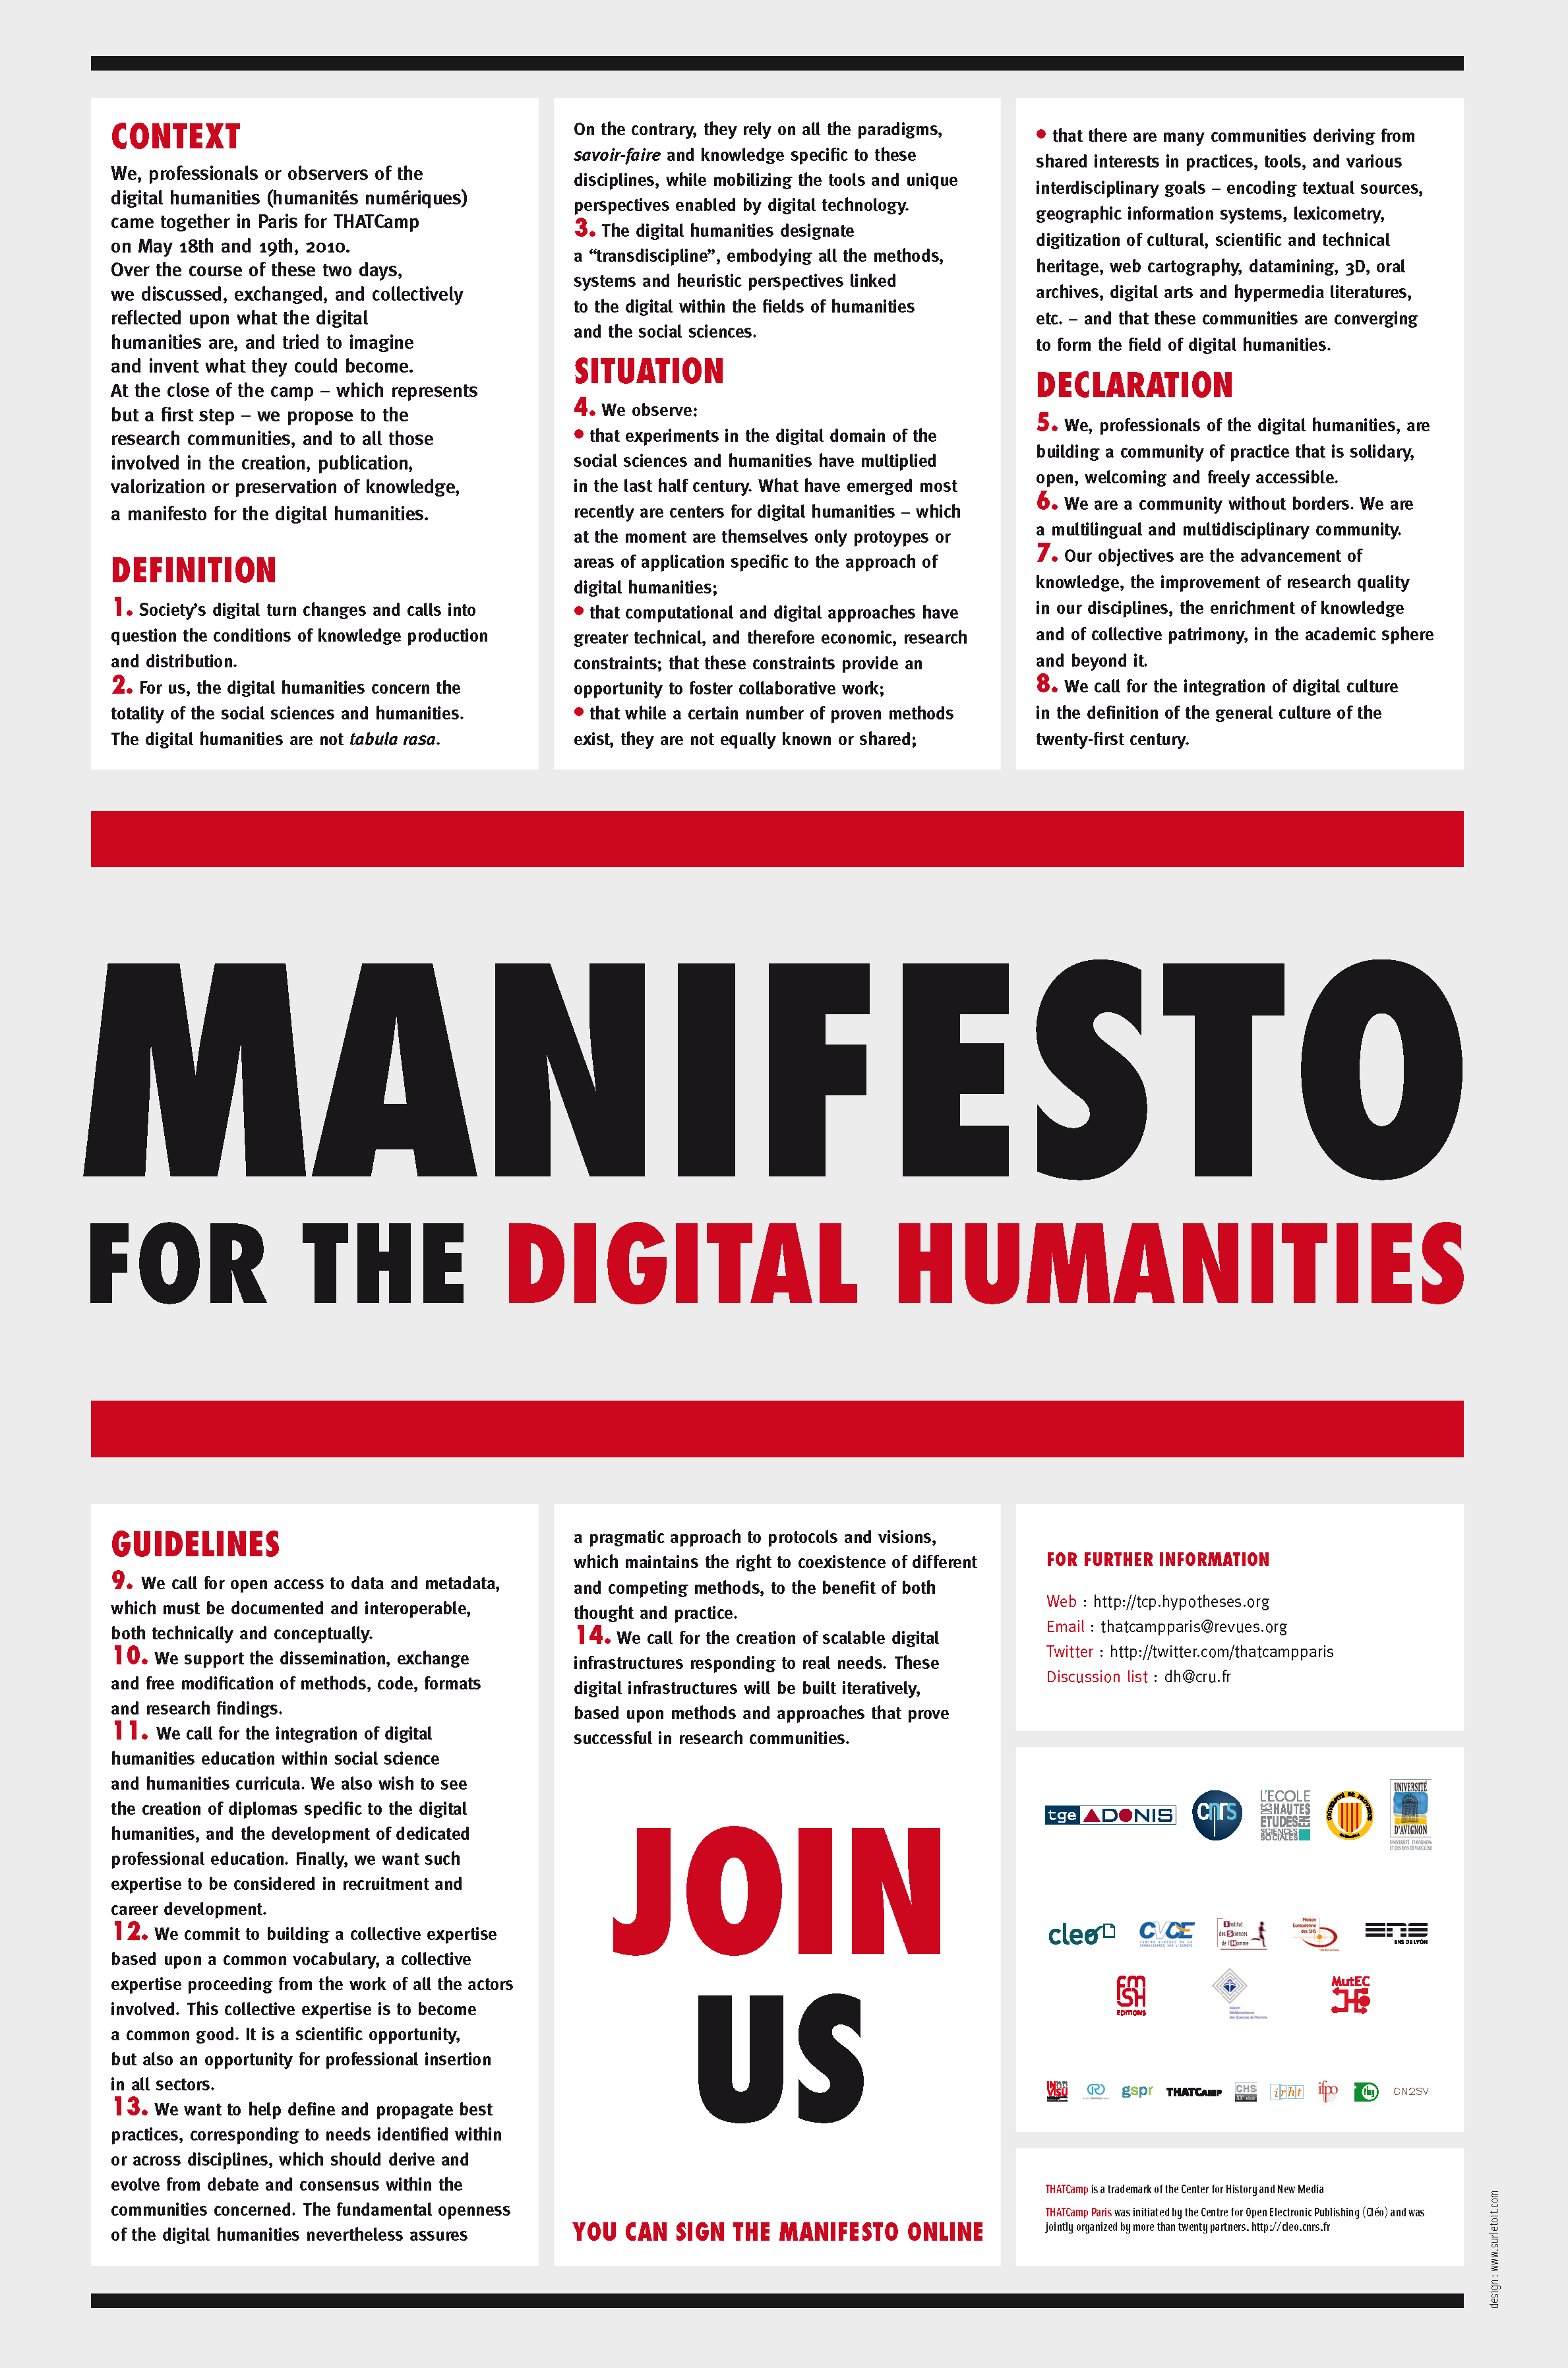 manifesto for the digital humanities – open electronic publishing